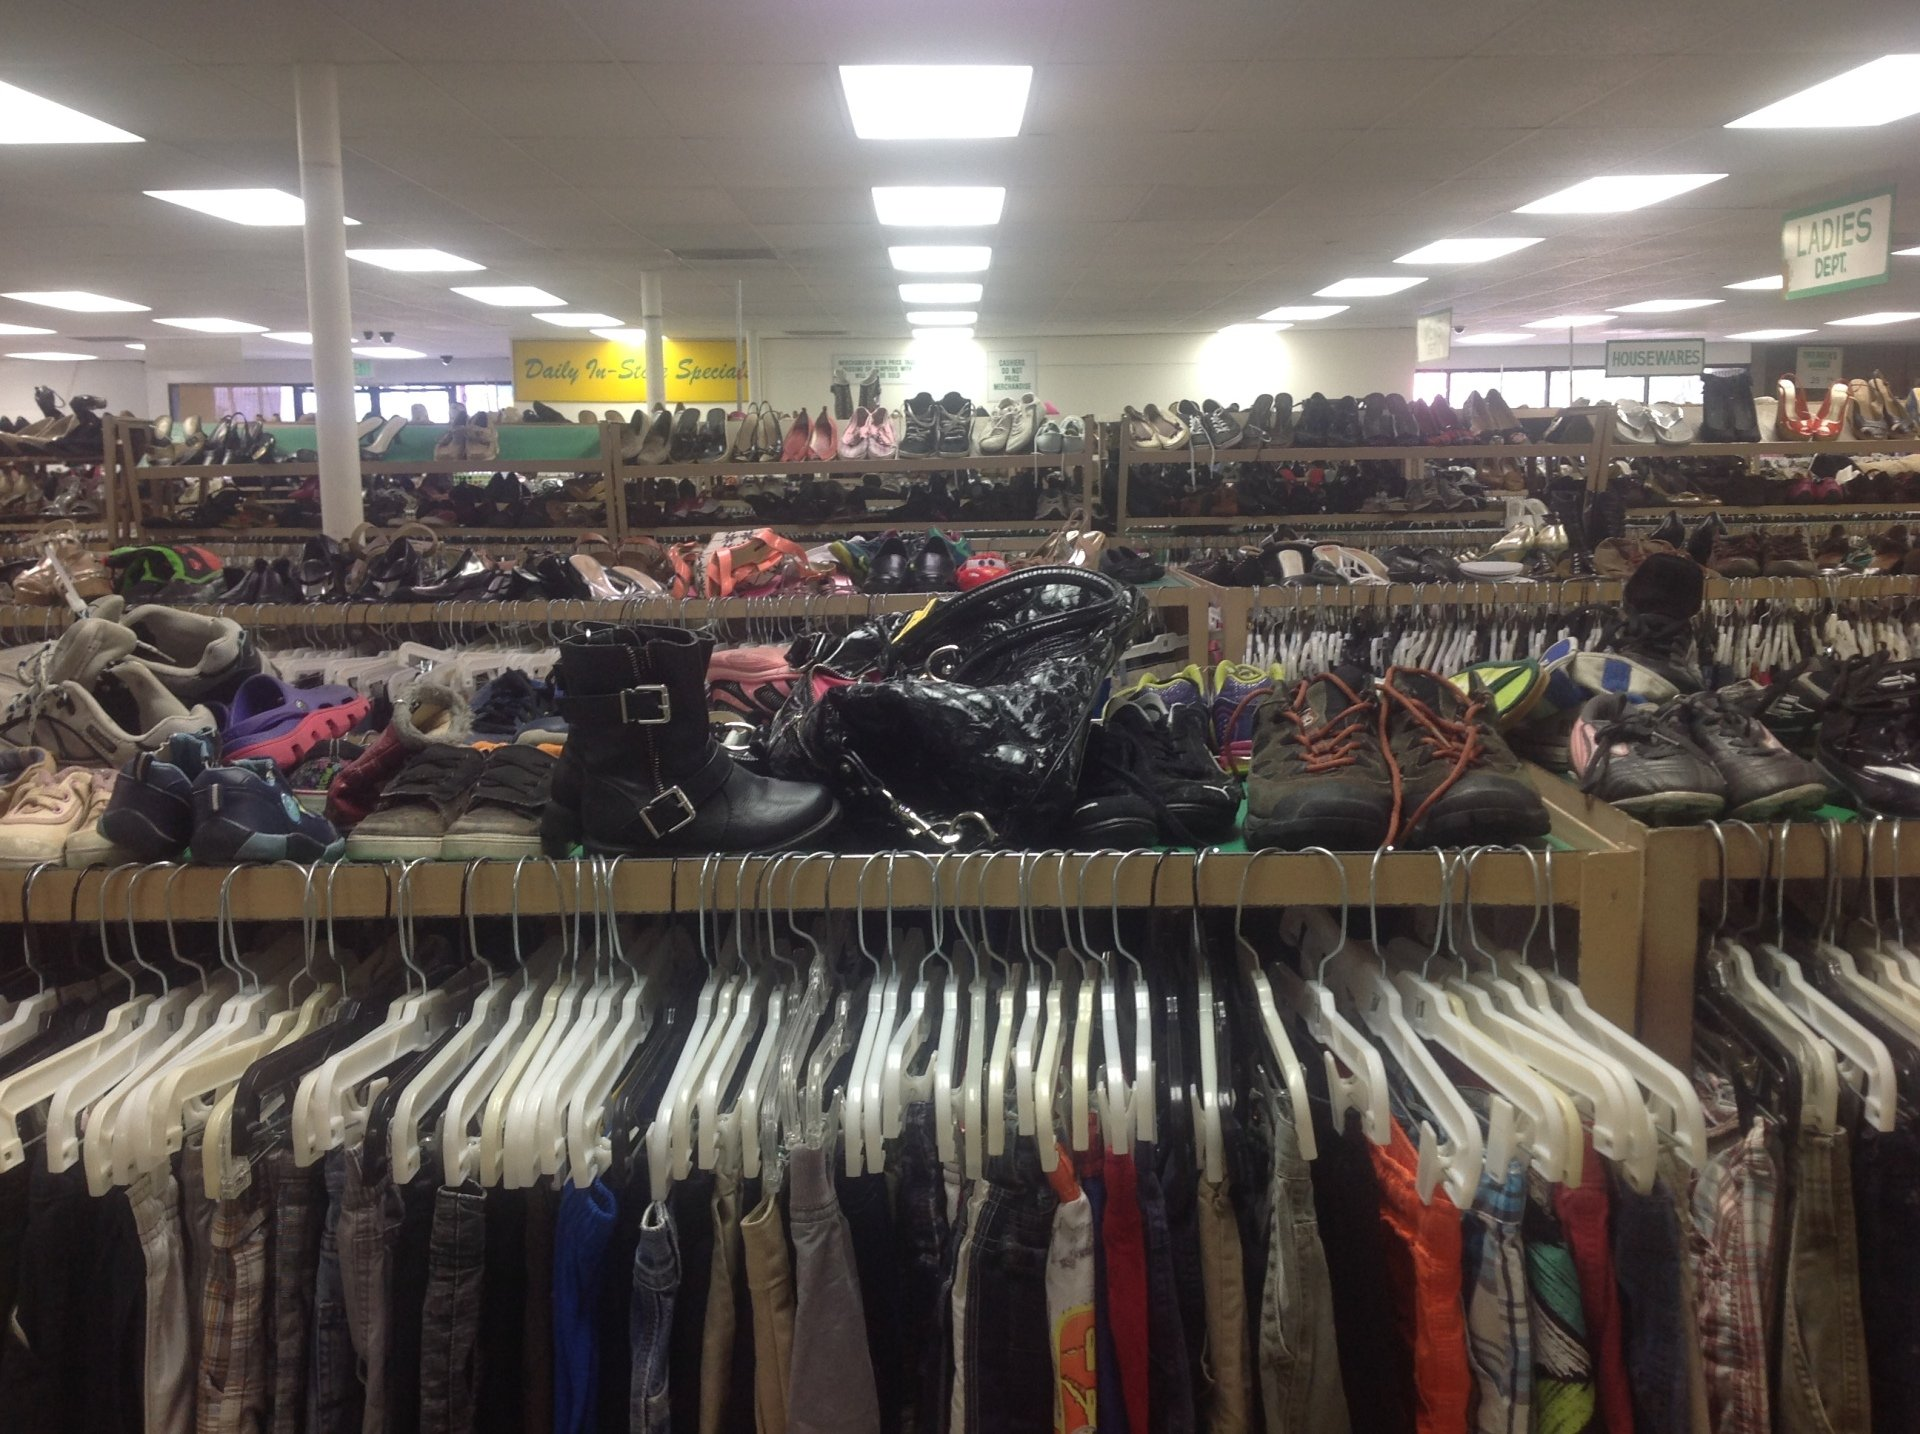 d6793ce13ba different kinds of cloths - clothing in Carson CA